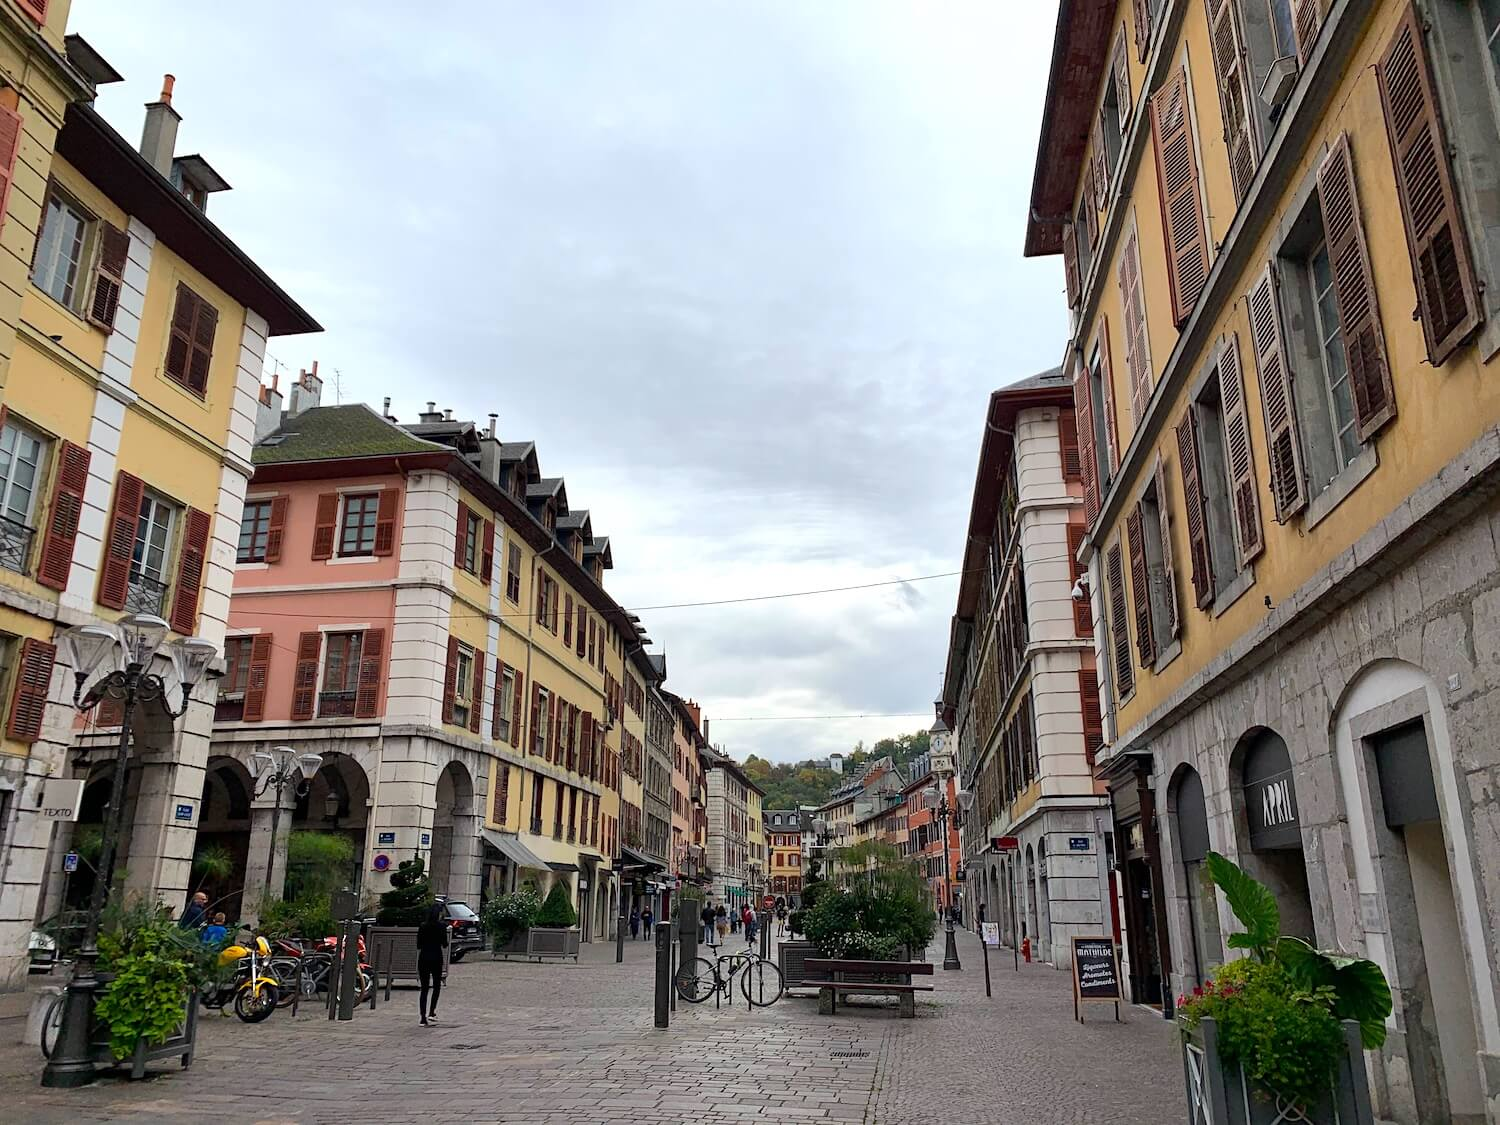 Chambery streets